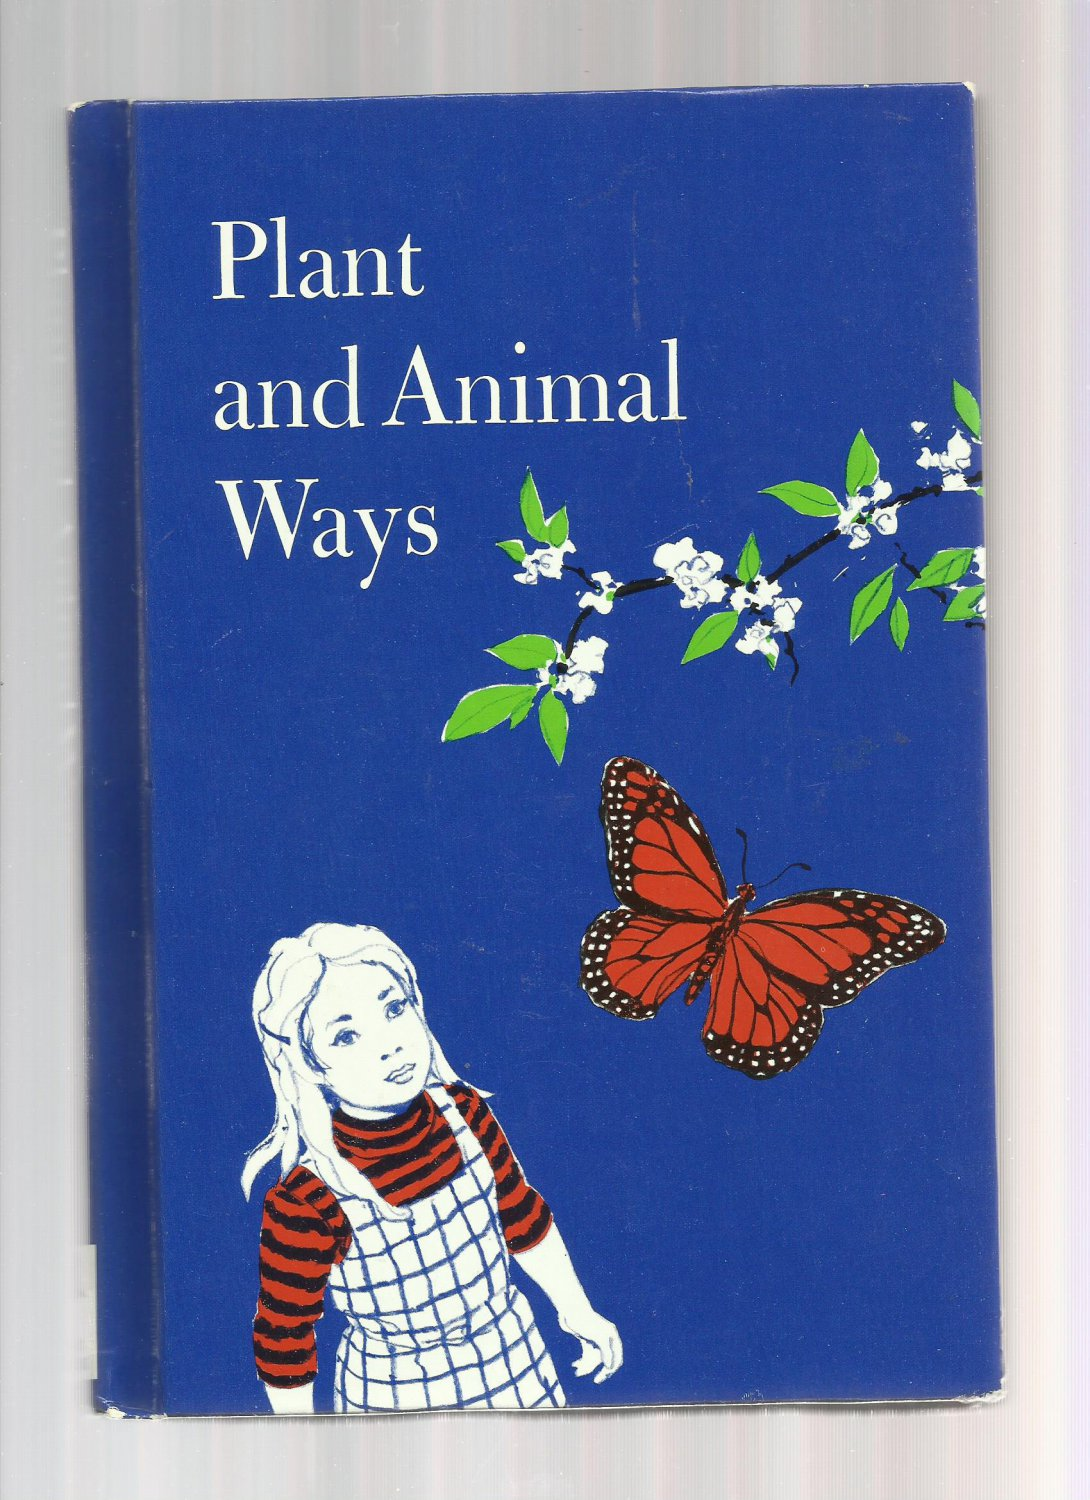 Vintage Children's Science Book - PLANT AND ANIMAL WAYS 1978